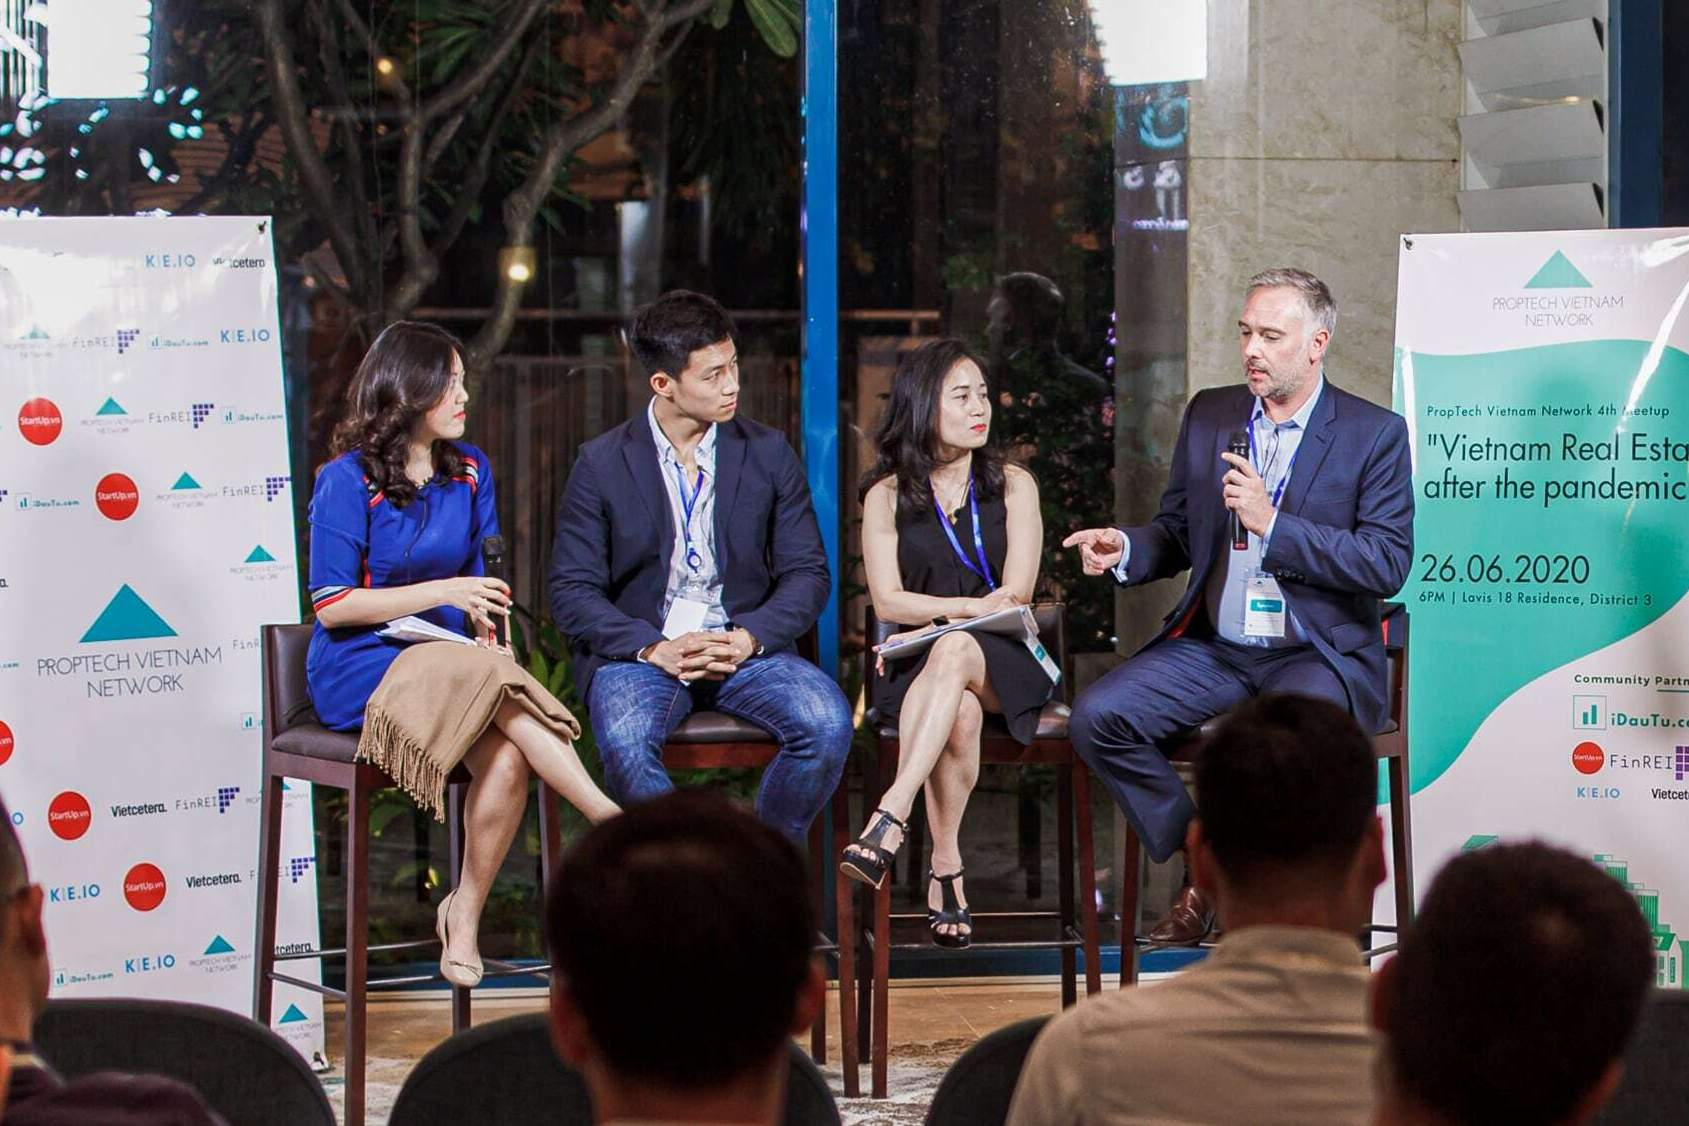 Proptech Vietnam's Take On Vietnam's Real Estate After the Pandemic